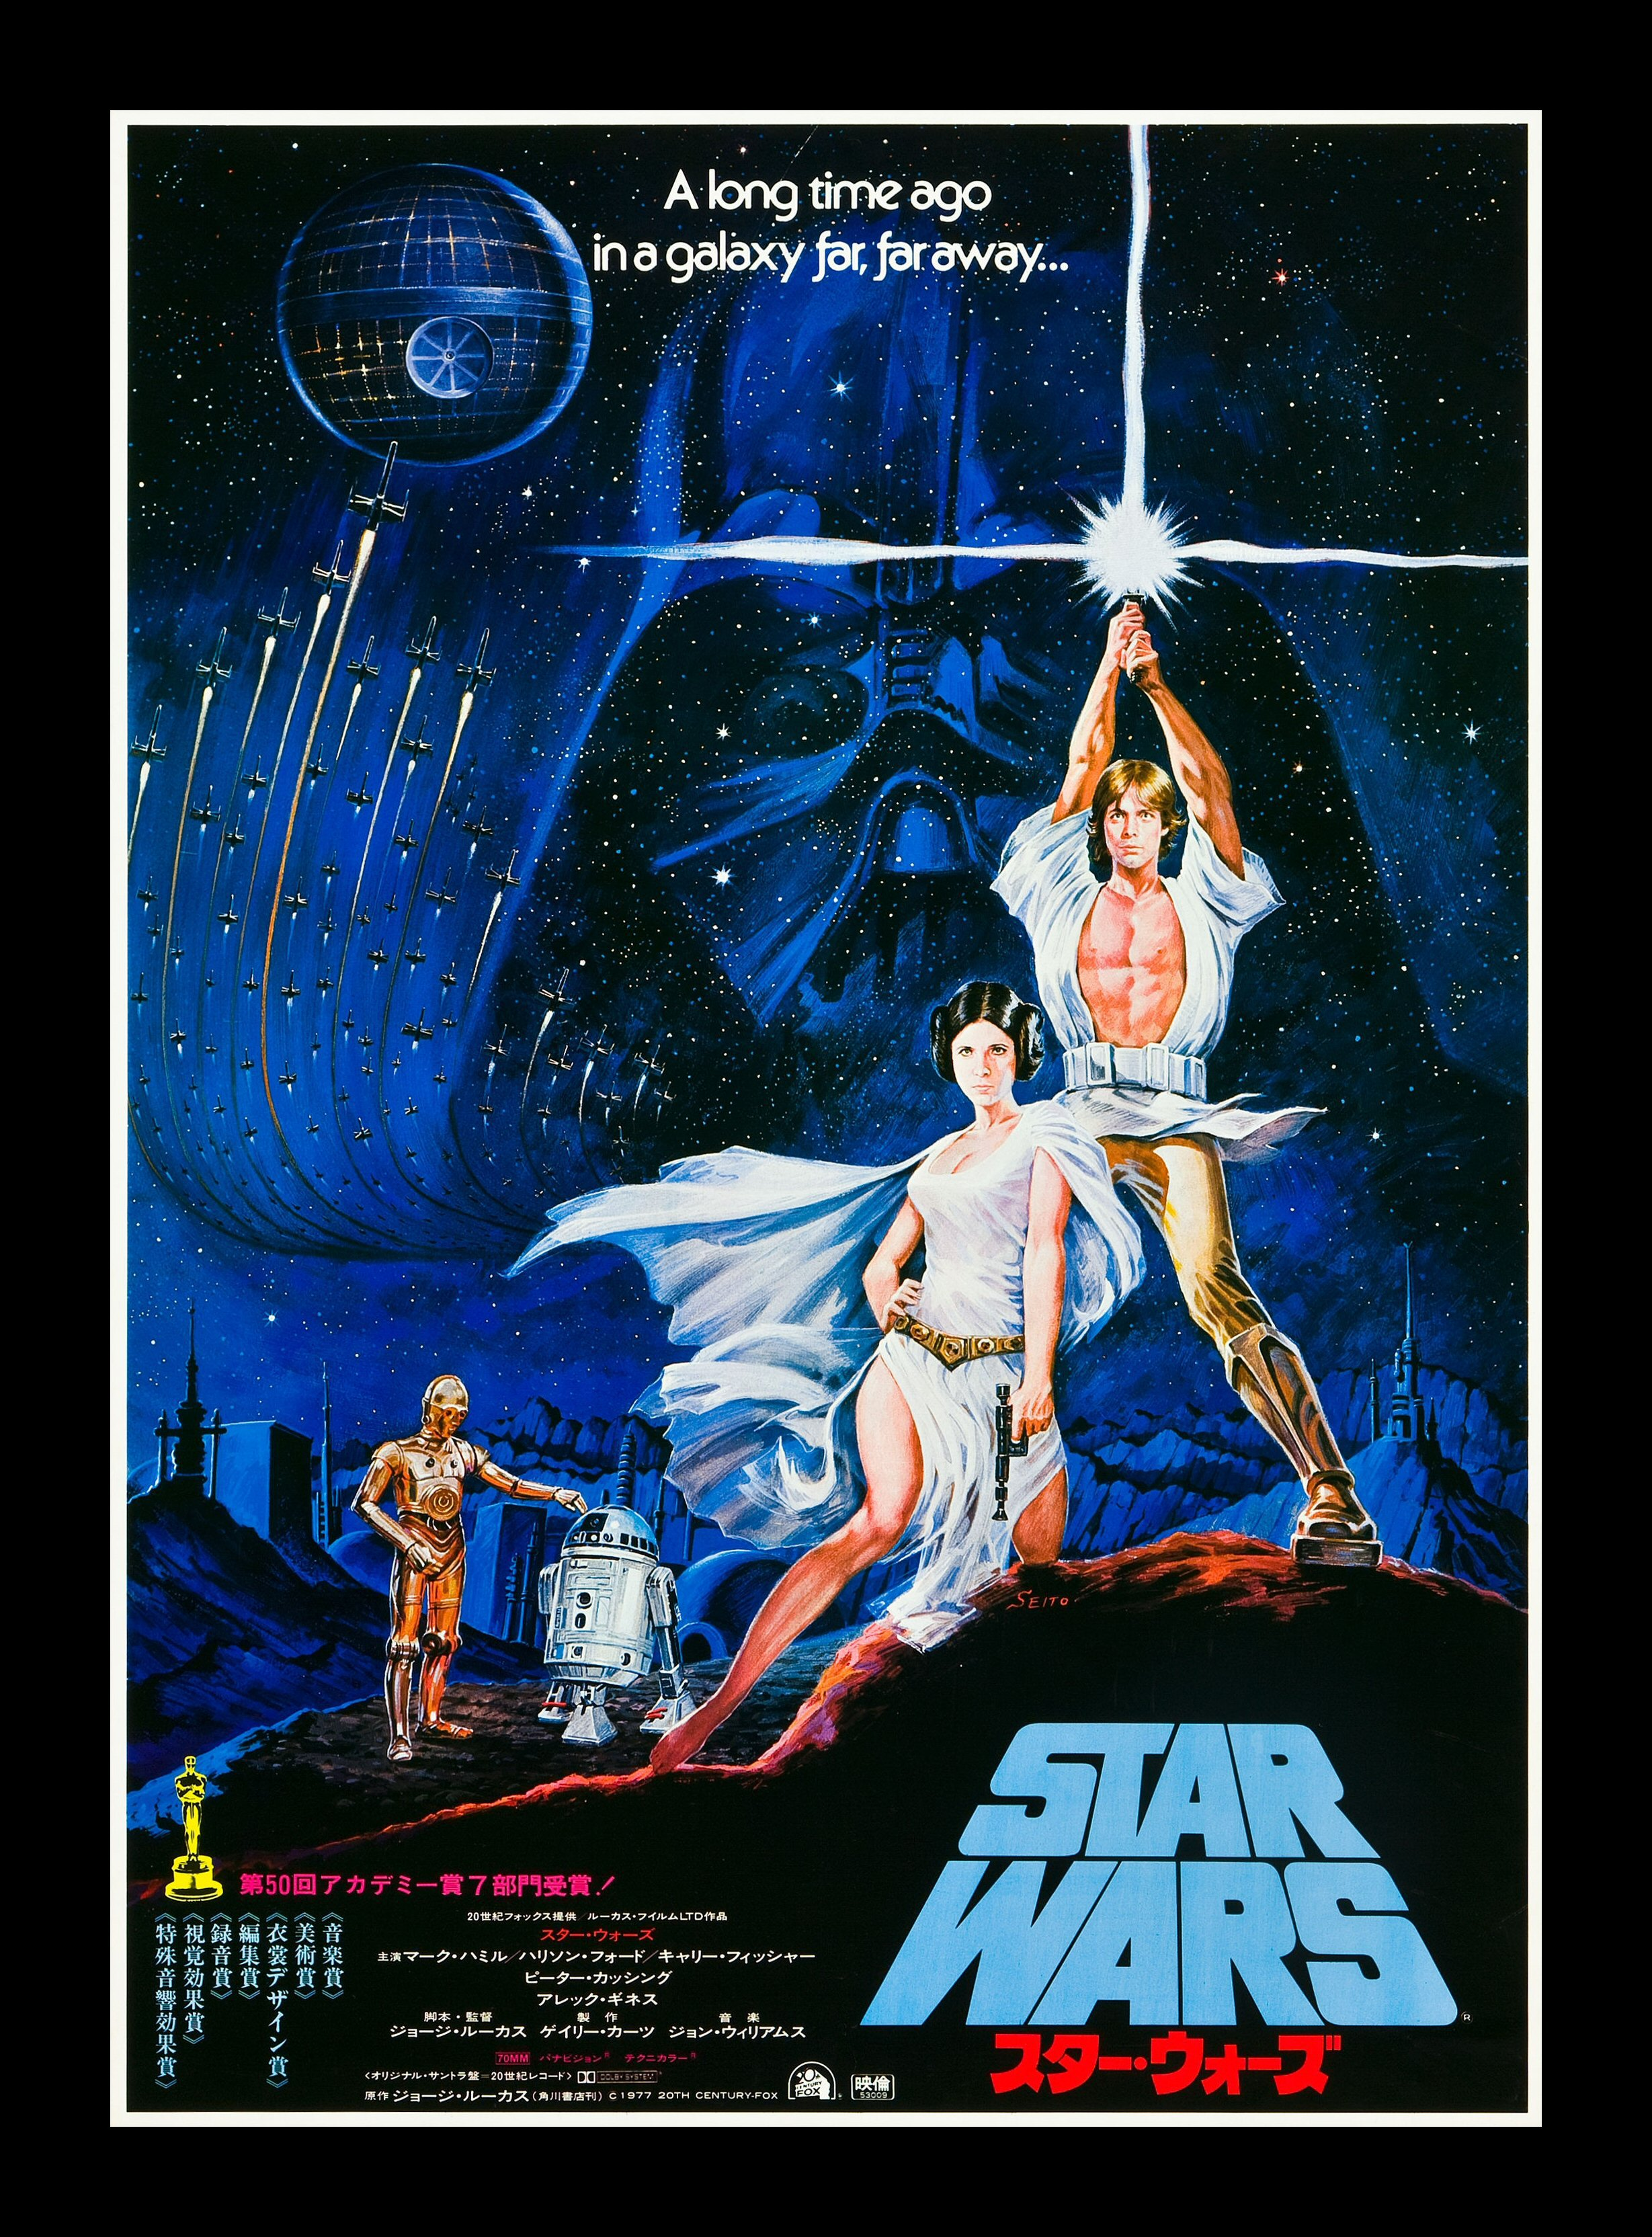 star wars cinemasterpieces japanese original movie